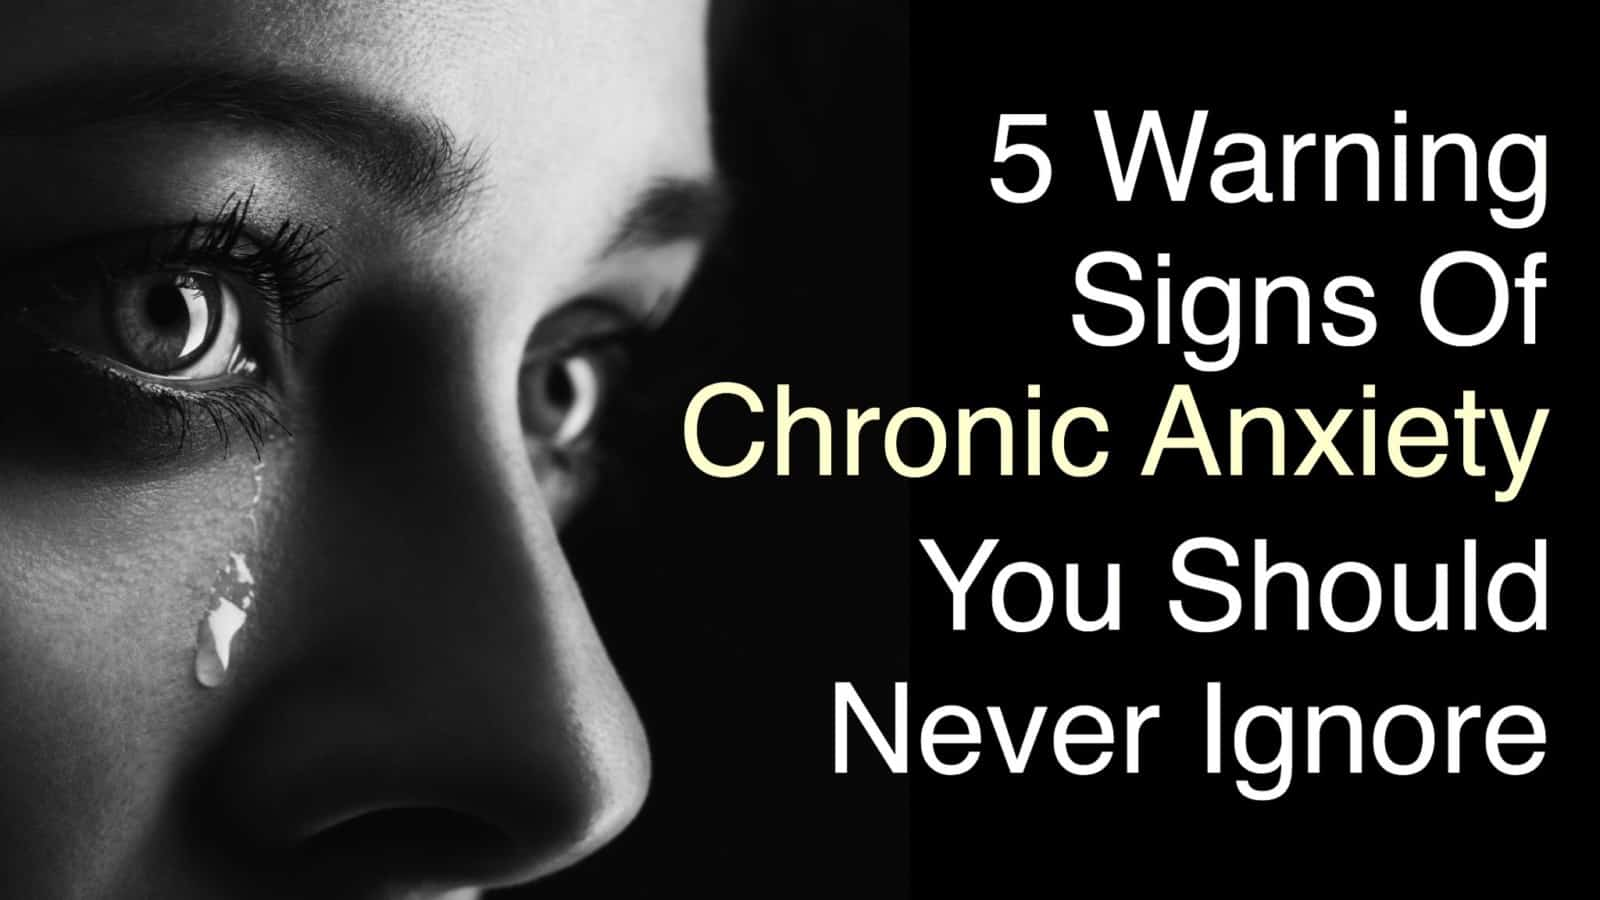 5 Warning Signs Of Chronic Anxiety You Should Never Ignore